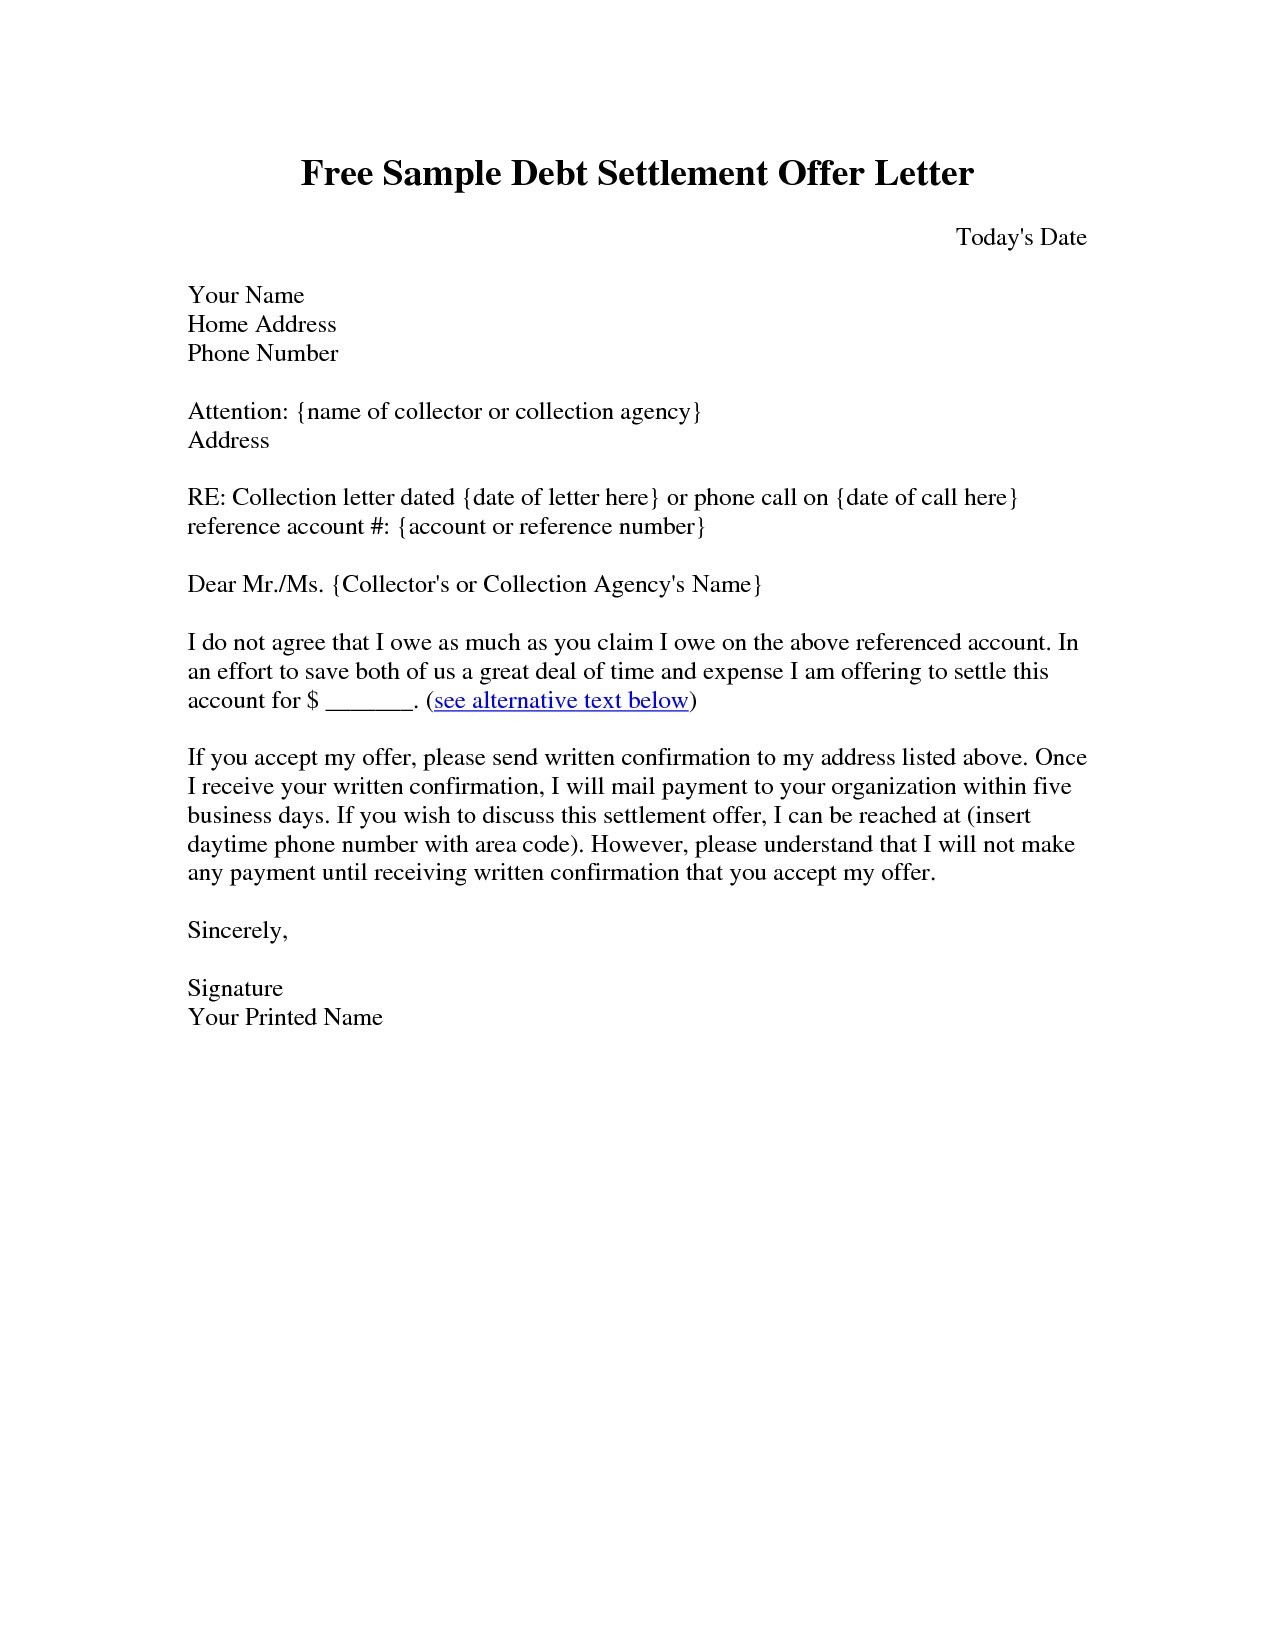 Cease and Desist Collection Agency Letter Template - Debt Collection Letter Templates Free